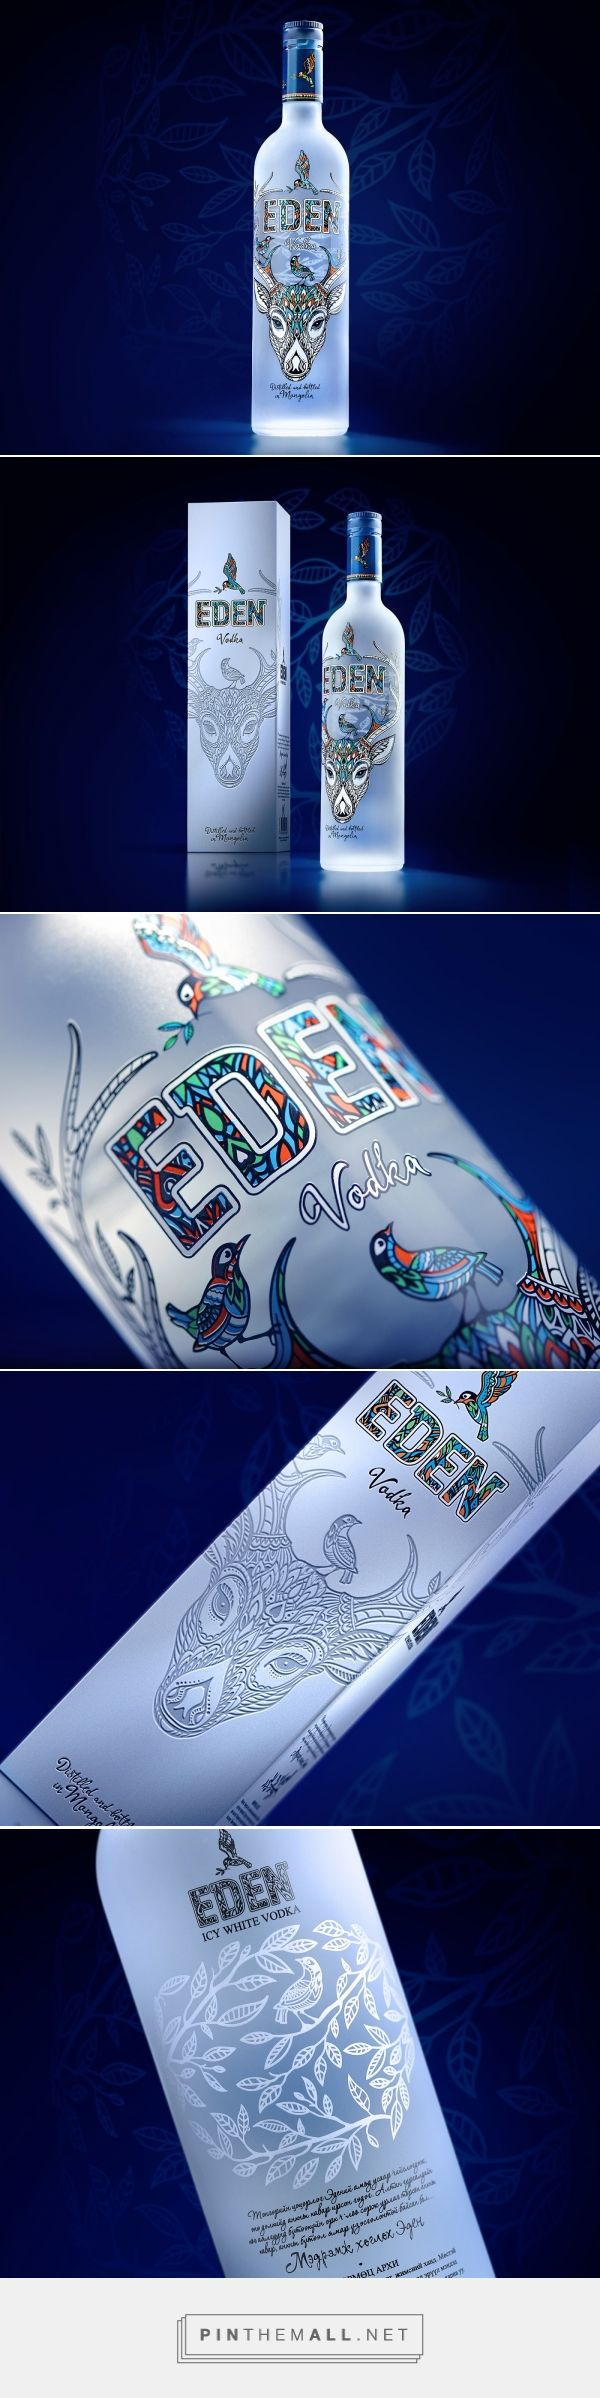 Eden Vodka packaging design by Uprise (Russia) - http://www.packagingoftheworld.com/2016/09/eden-vodka.html